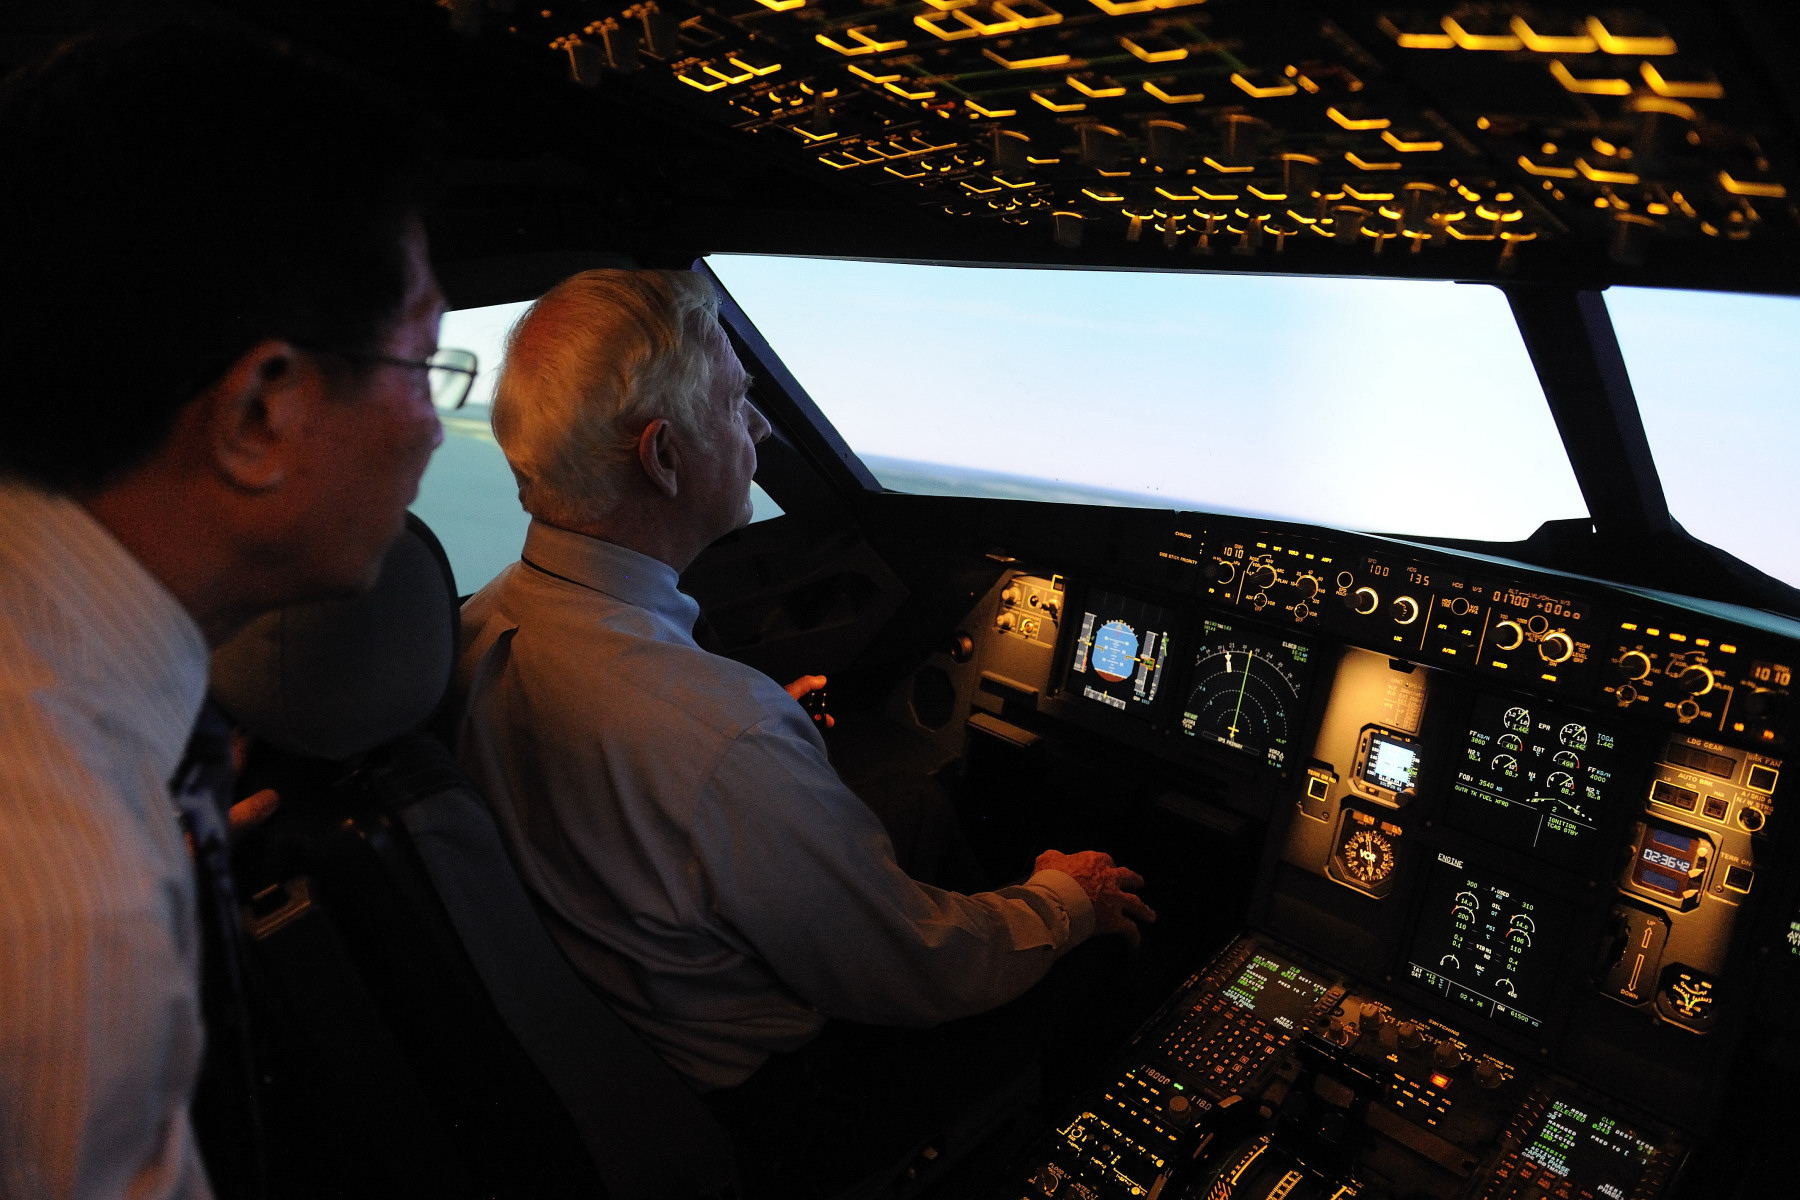 On the last day of the State vist to Singapore, the Governor General visited the Canadian Aviation Electronics (CAE) Simulator where he had the opportunity to try the simulator while receiving an overview of CAE's capabilities and its current activities and growth for Singapore and the Association of Southeast Asian Nations region.